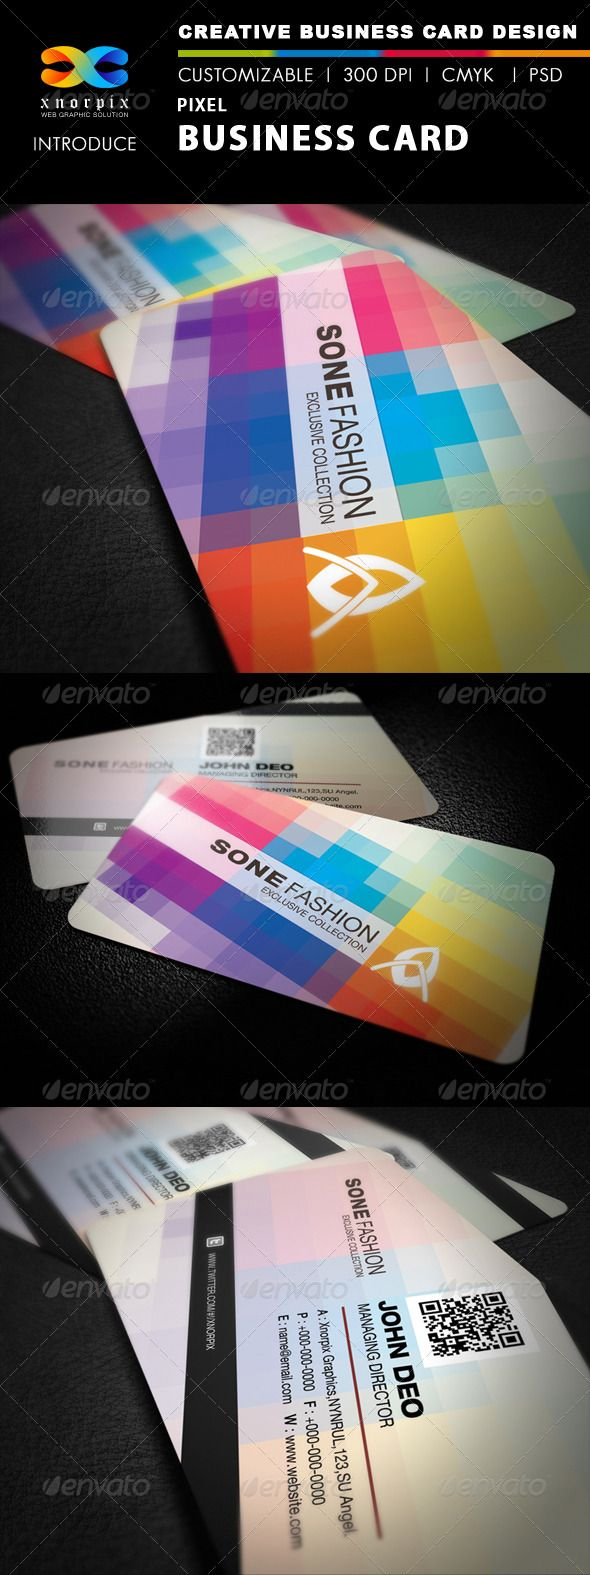 The 103 best print templates images on pinterest print templates pixel business card reheart Choice Image